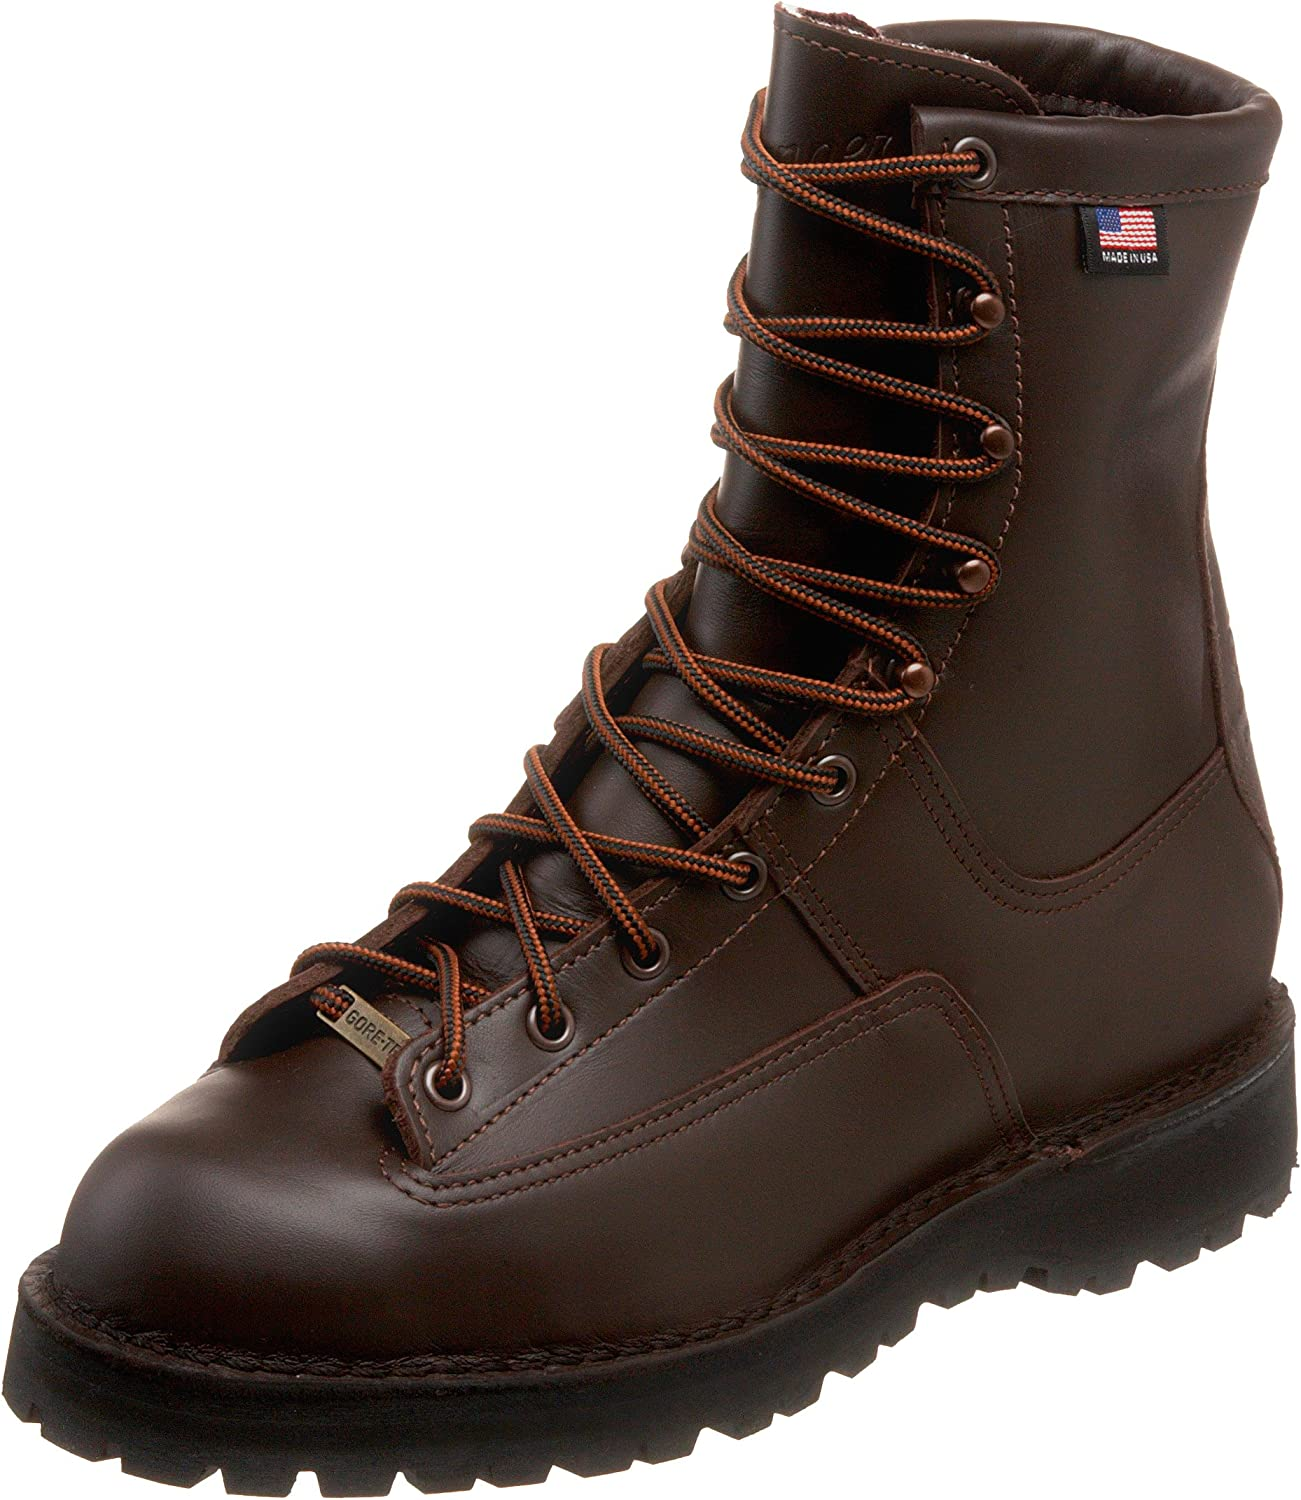 "Danner Men's Hood Winter Light 8"" Gore-Tex 200G Hunting Boot"